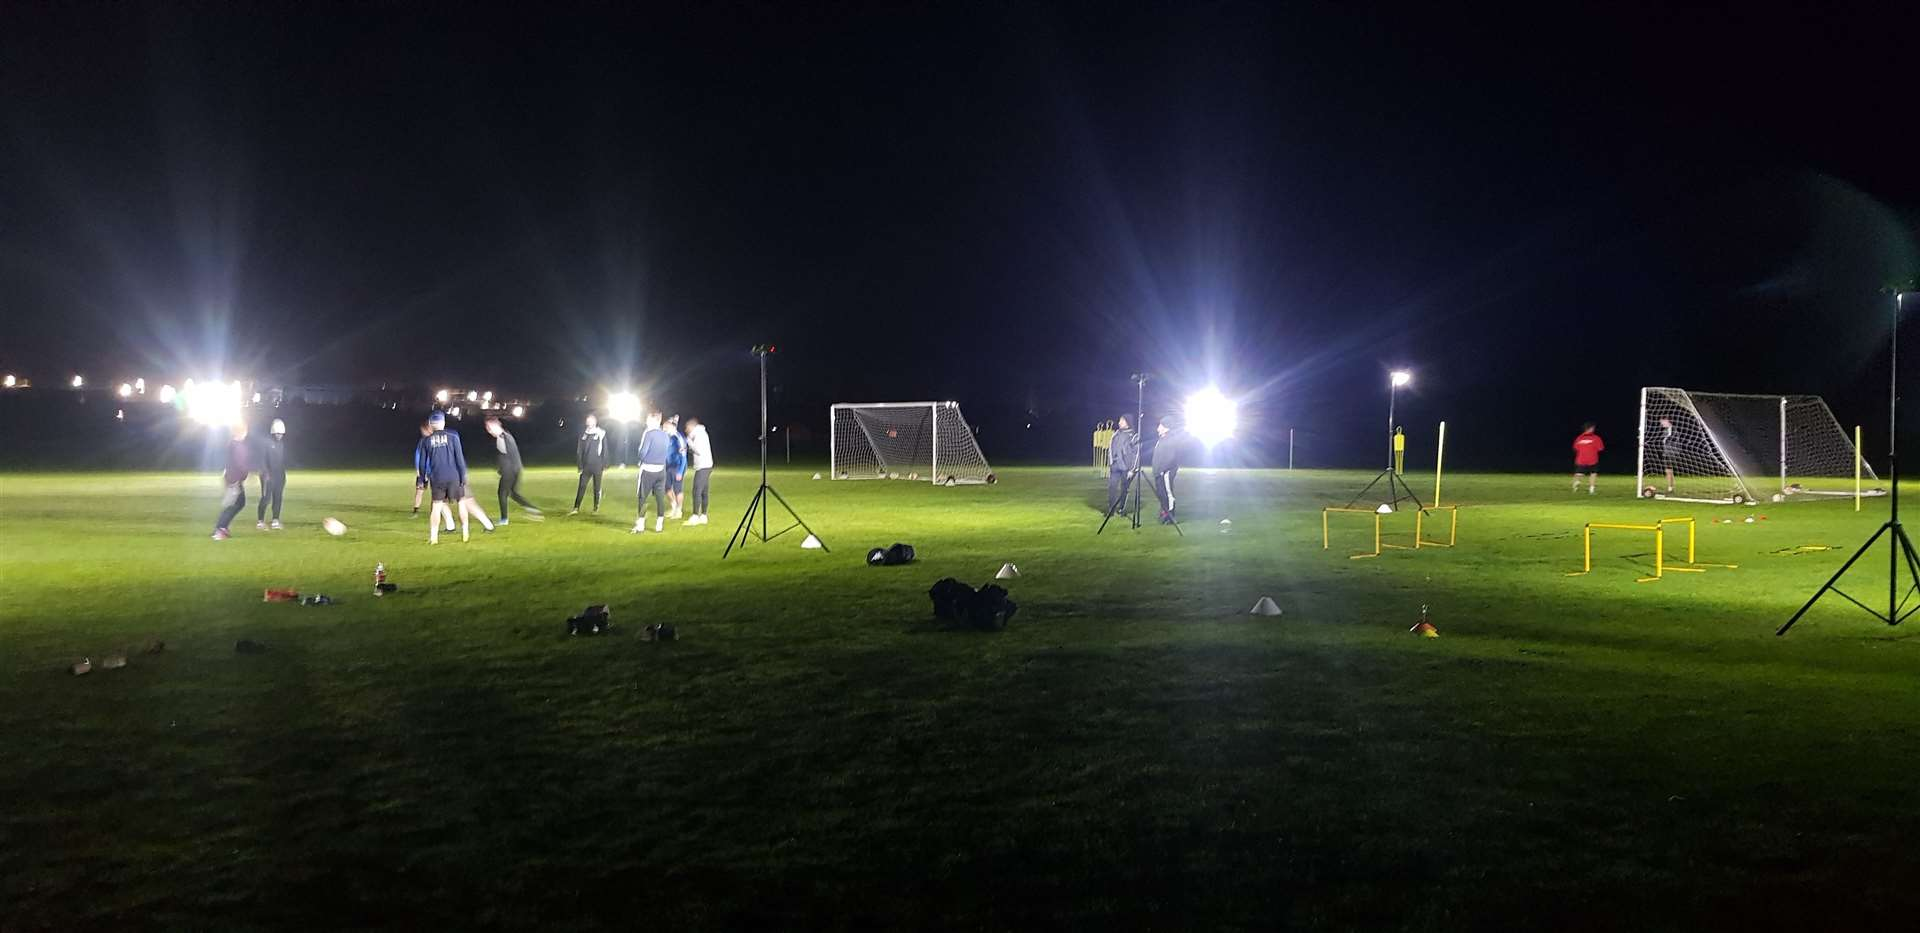 The mobile floodlights in use. (43943350)